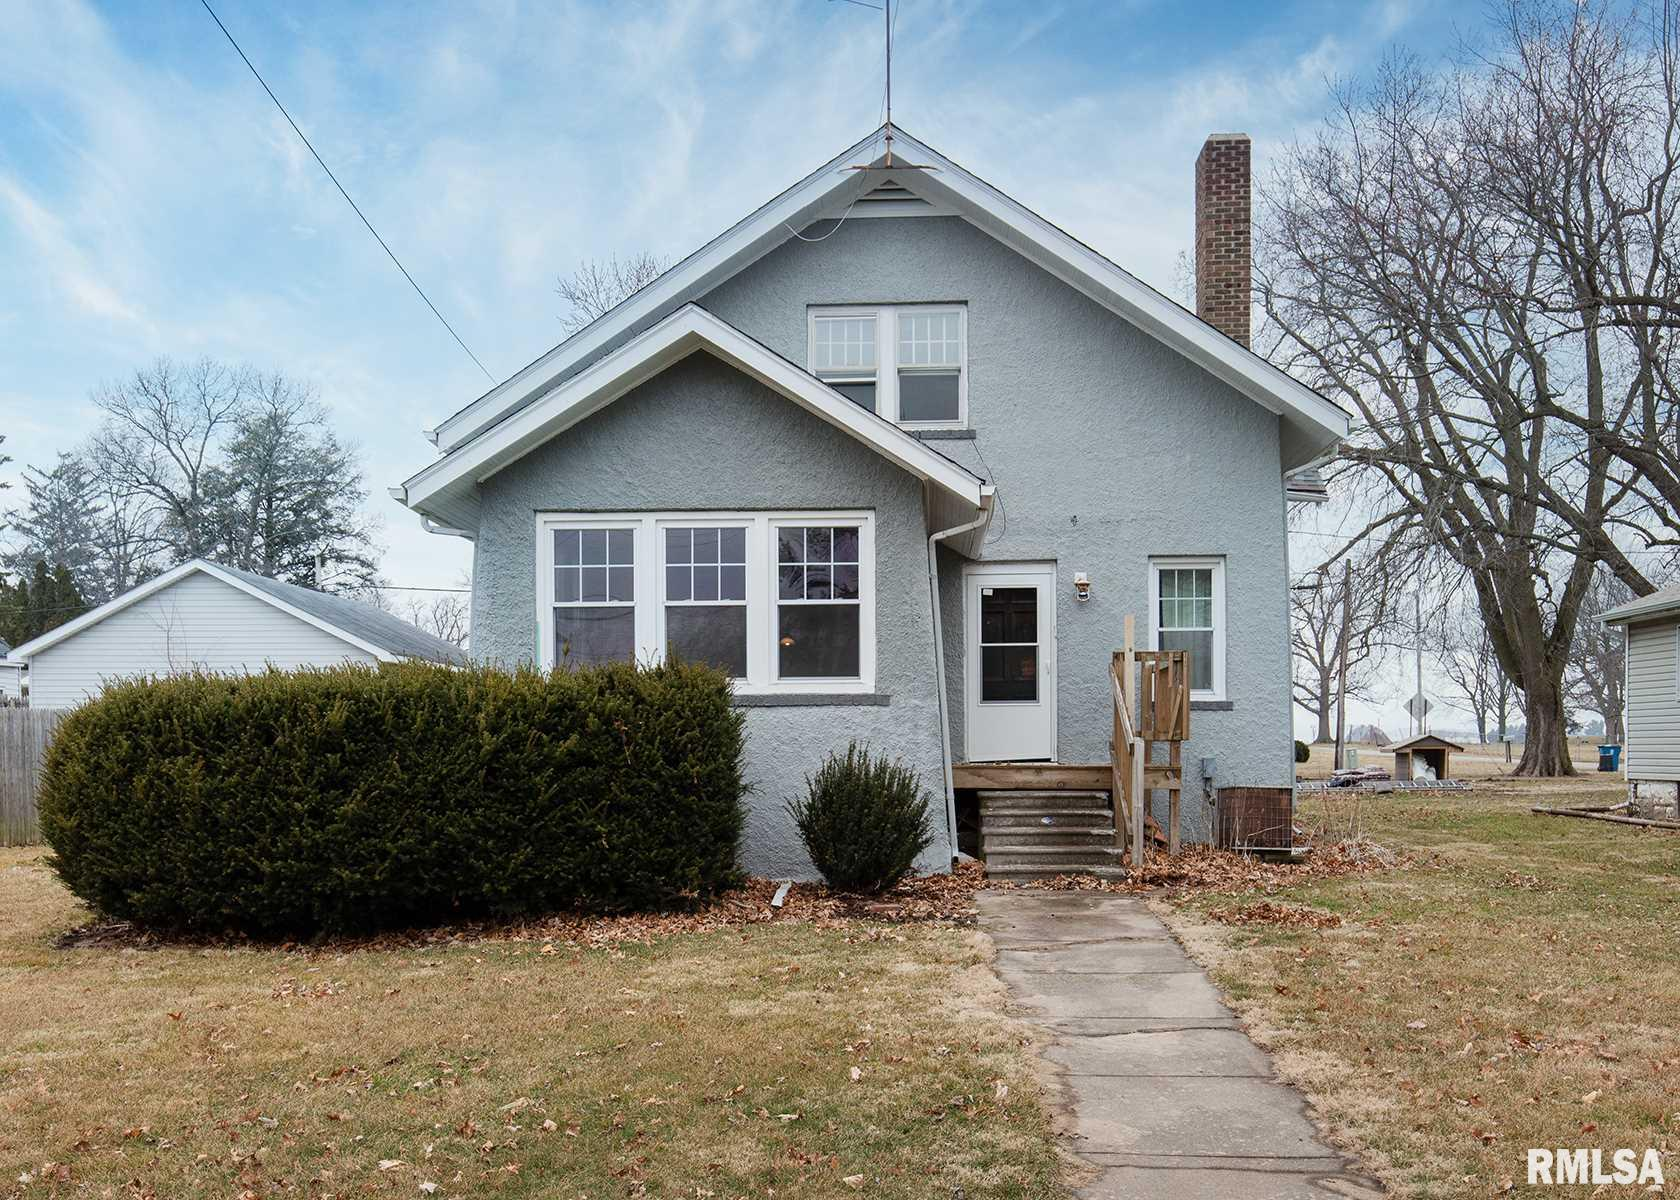 208 S PINE Property Photo - Buda, IL real estate listing